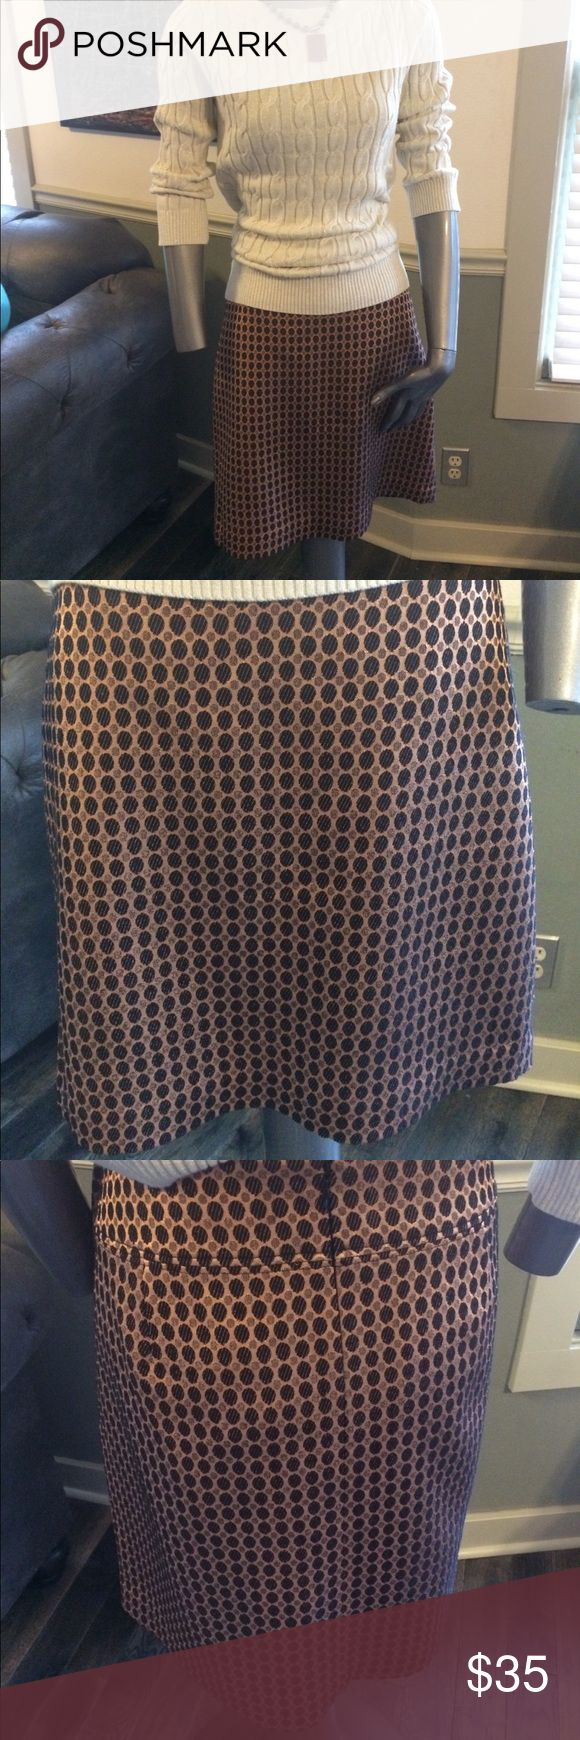 NWT Ann Taylor LOFT Skirt NWT Ann Taylor LOFT Skirt. Coppery color background with two sizes of black embroidered dots. Flat front with banding and darts at waist back for sleek fit that accents figure nicely. Materials--56 % Rayon/ 40% Polyester/ 4% Spandex. Full 100% Polyester lining. Approximately 19 inches from waist to hem when flat. Sharp enough to pair with camisole & blazer or sweater for work and then some spiked heel for a cocktail after. Ann Taylor Skirts